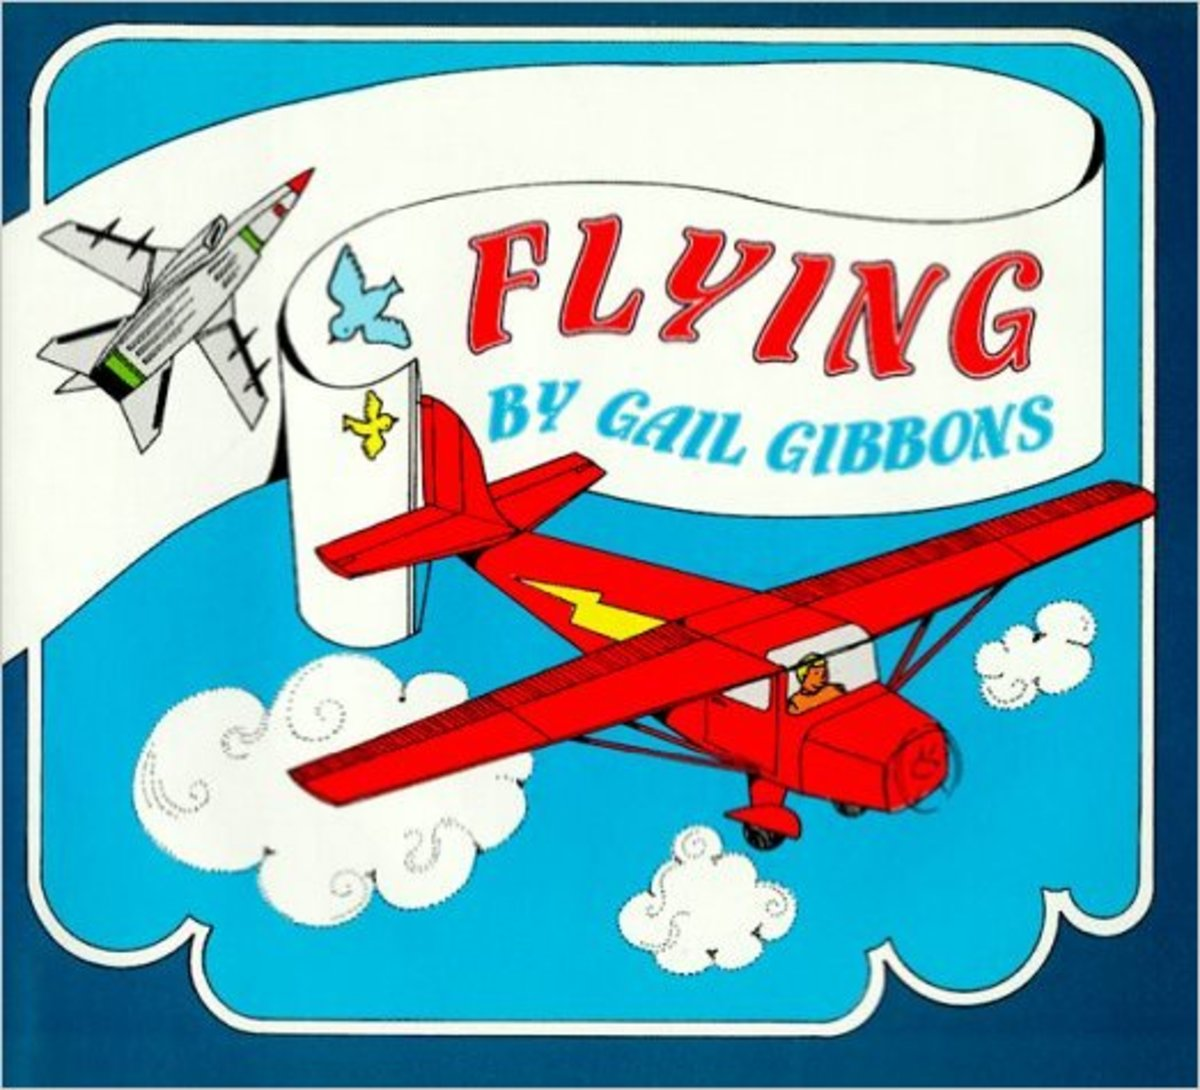 Flying by Gail Gibbons - All images are from amazon.com.